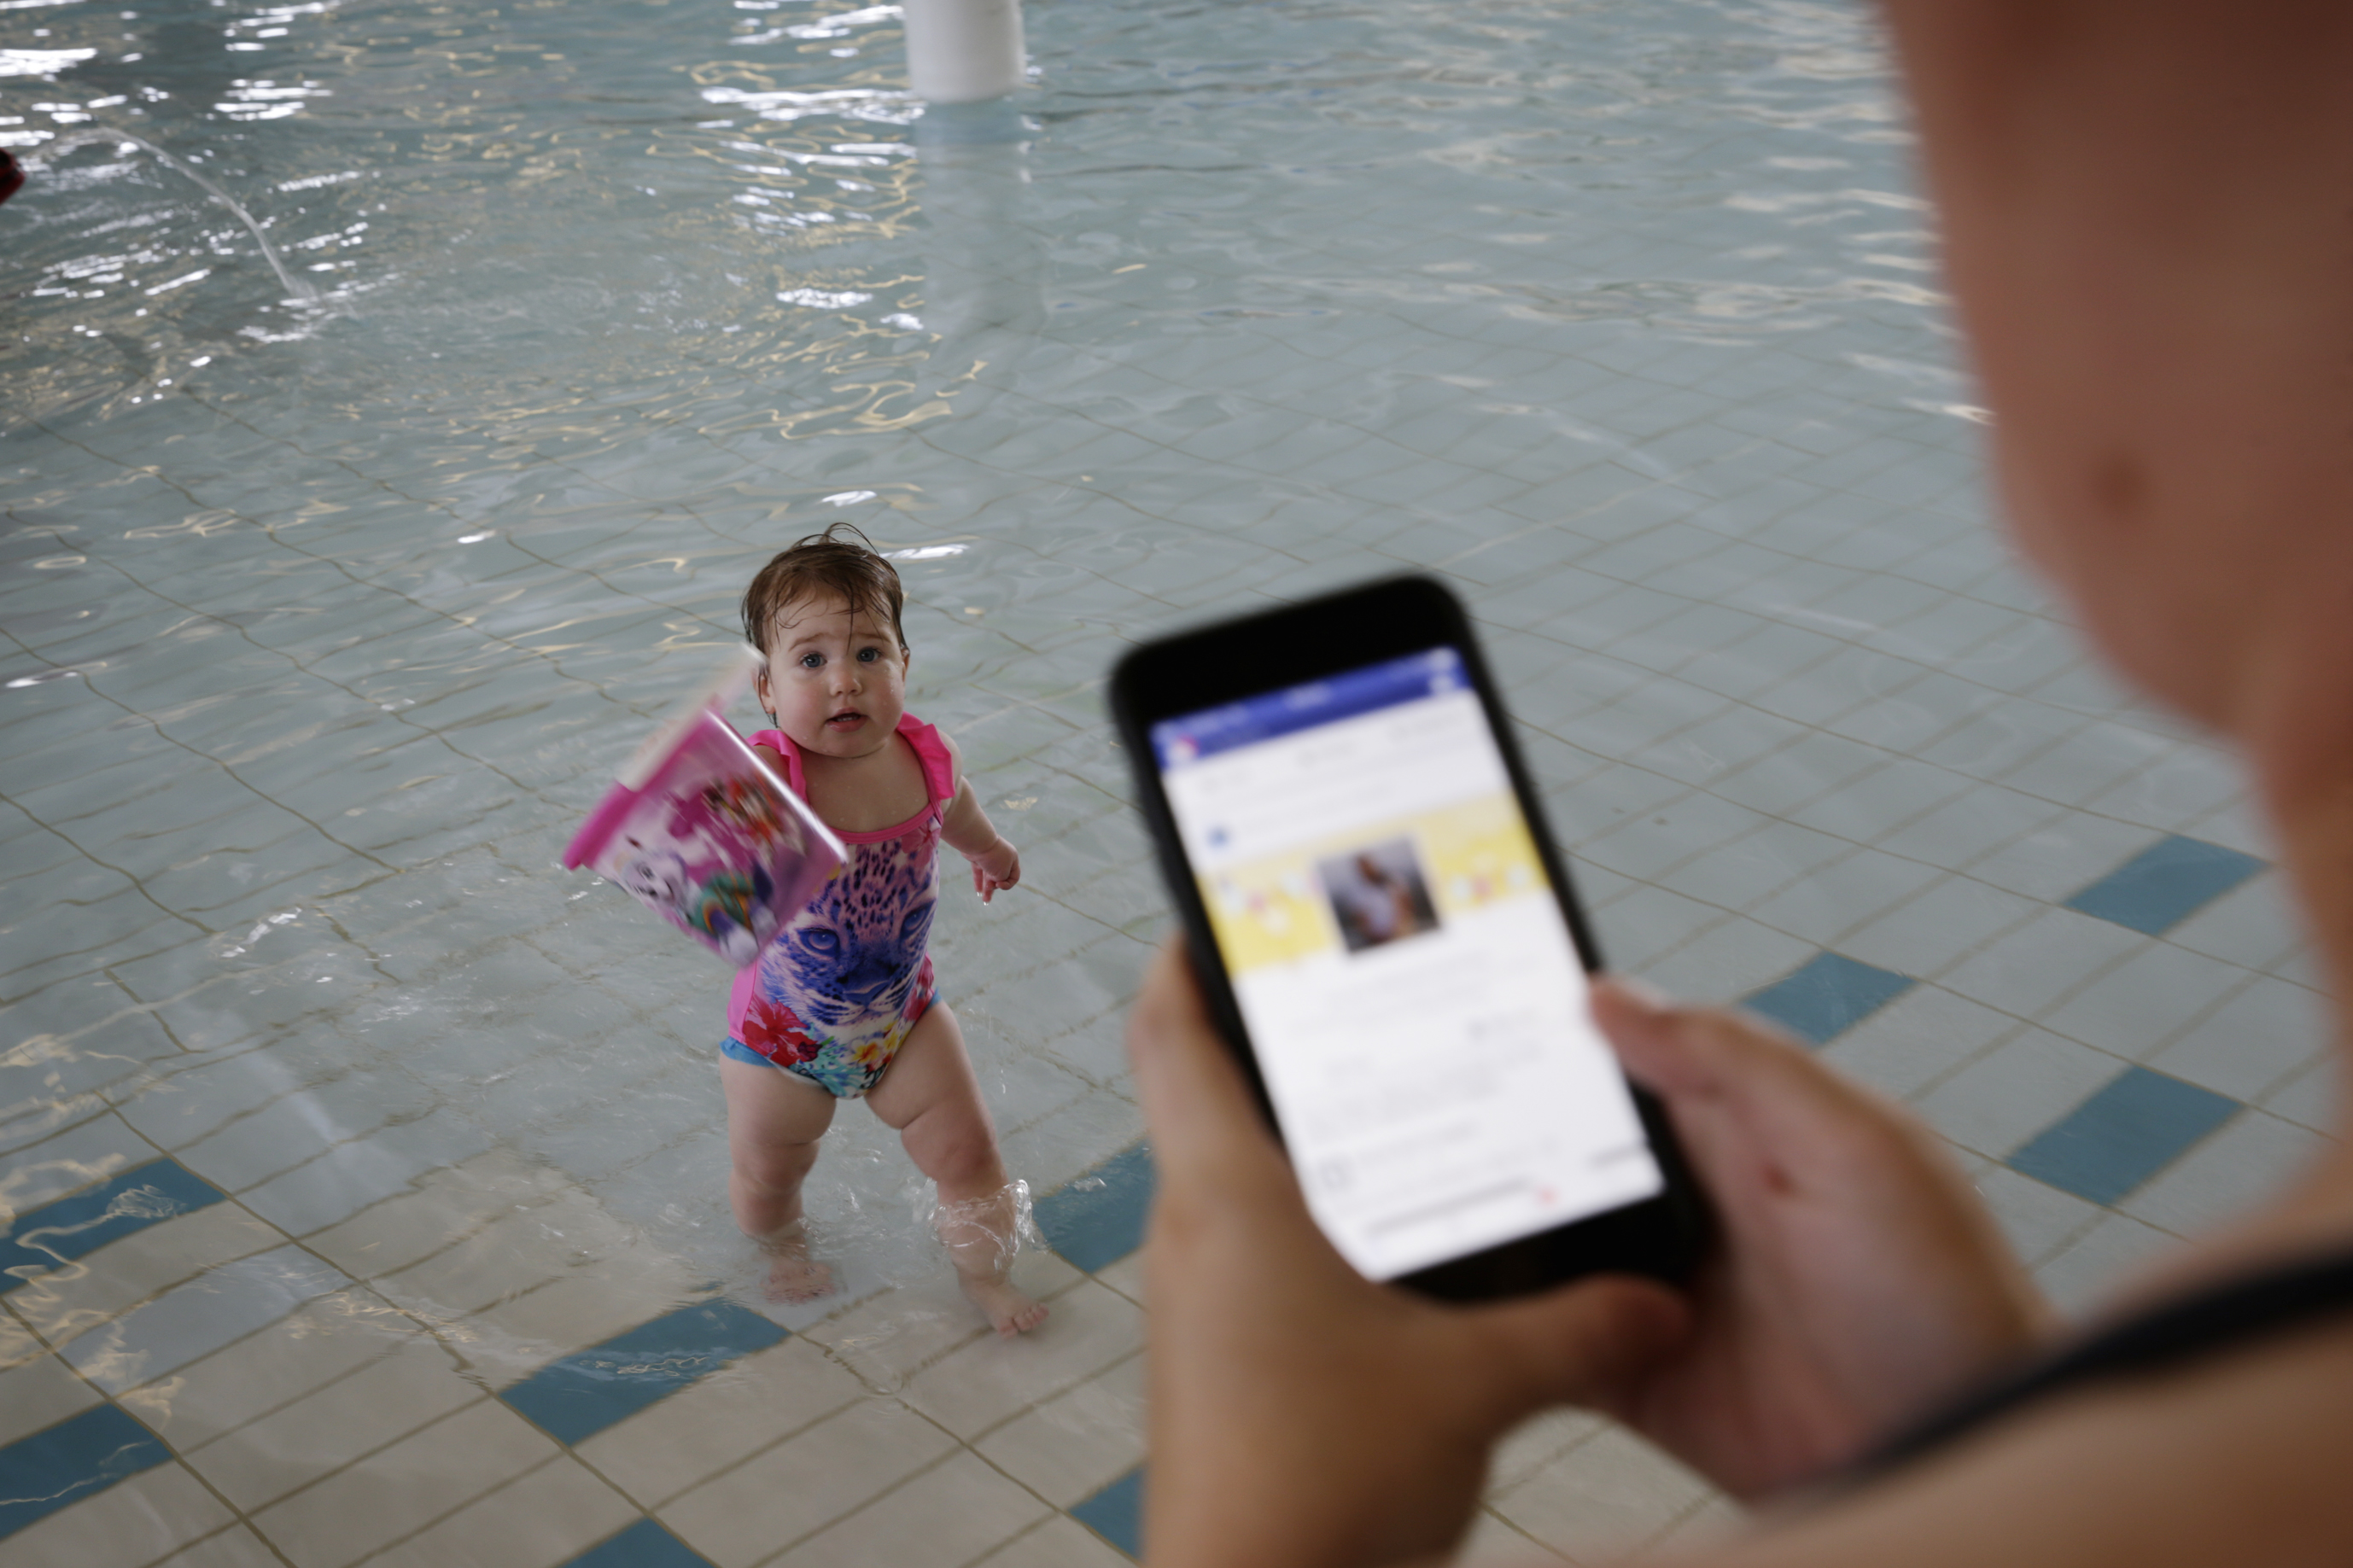 Kristie Jones with daughter Violet Jones (1). Royal Life Saving is launching their summer safety campaign at Beatty Park. The campaign is geared around 'watch around water', urging parents to get off their phones while the kids are in the water. Photo: Andrew Ritchie